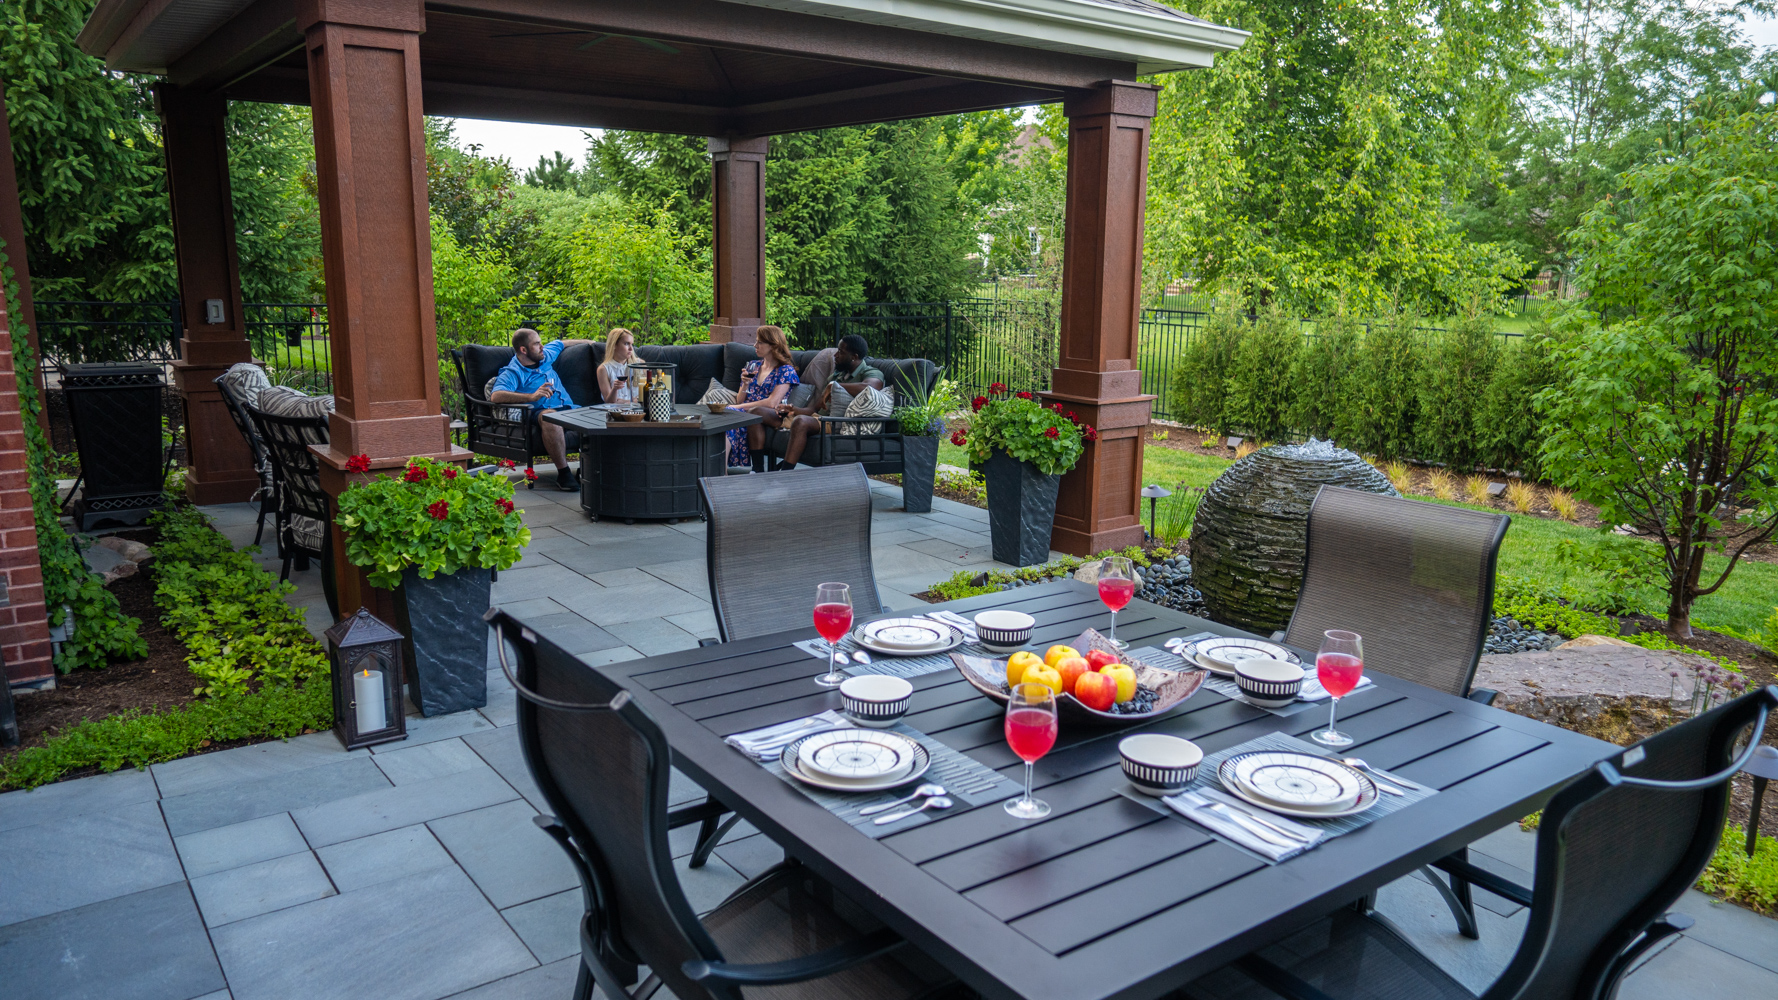 Shorewood, IL Landscape Design Case Study: Creating Two Spaces in One